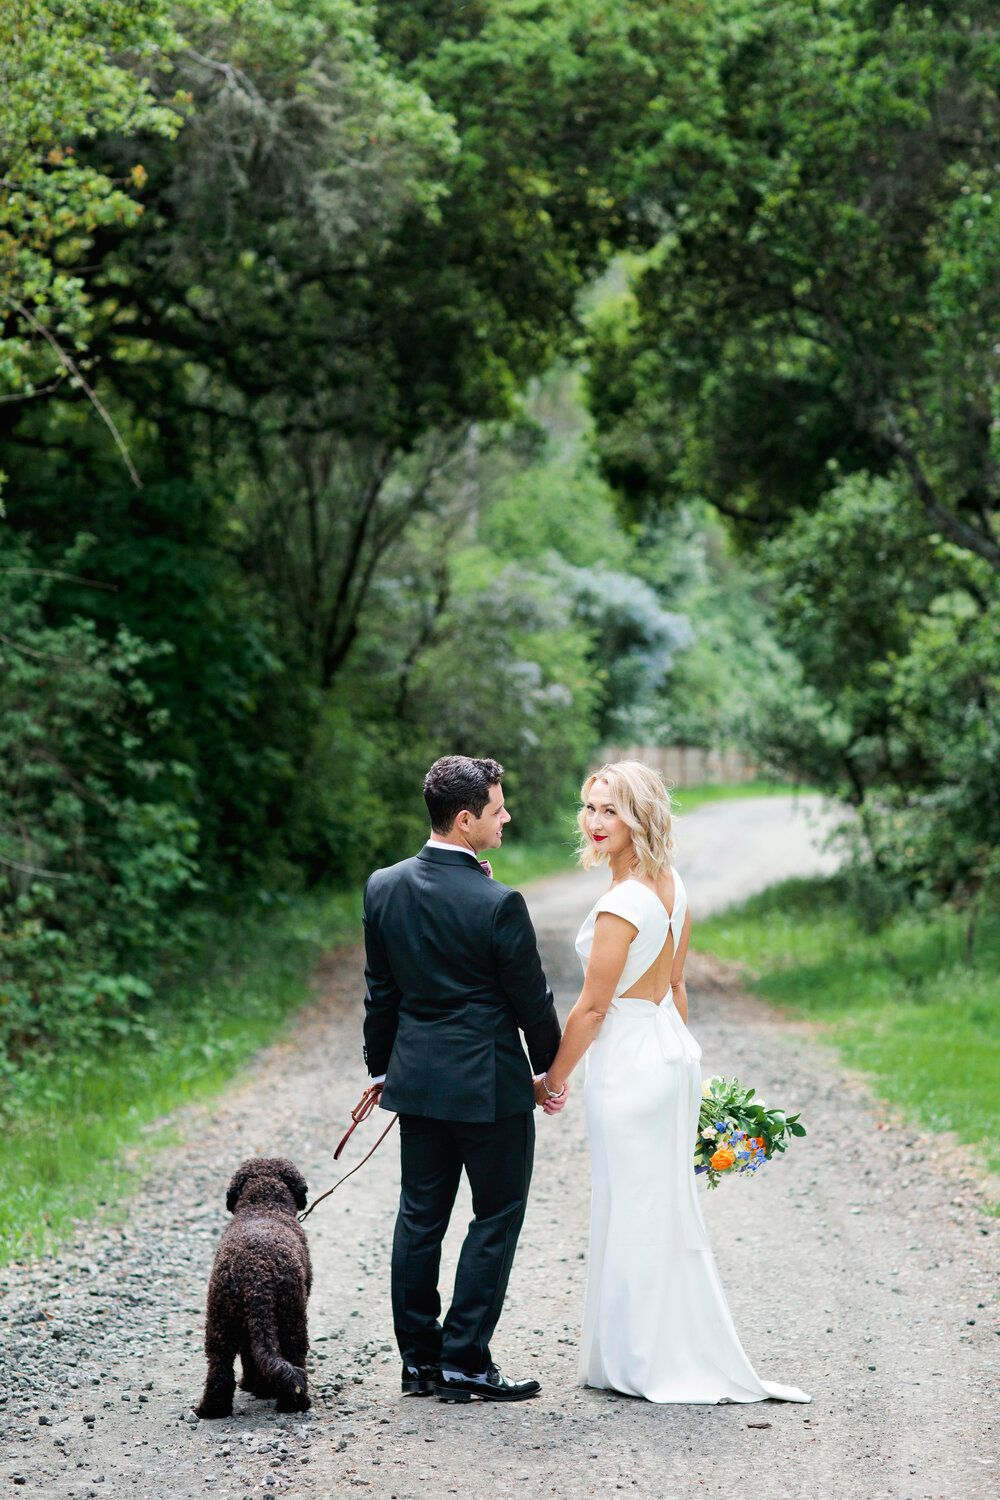 OVY Camp Wedding // Tatyana + Daniel (With images